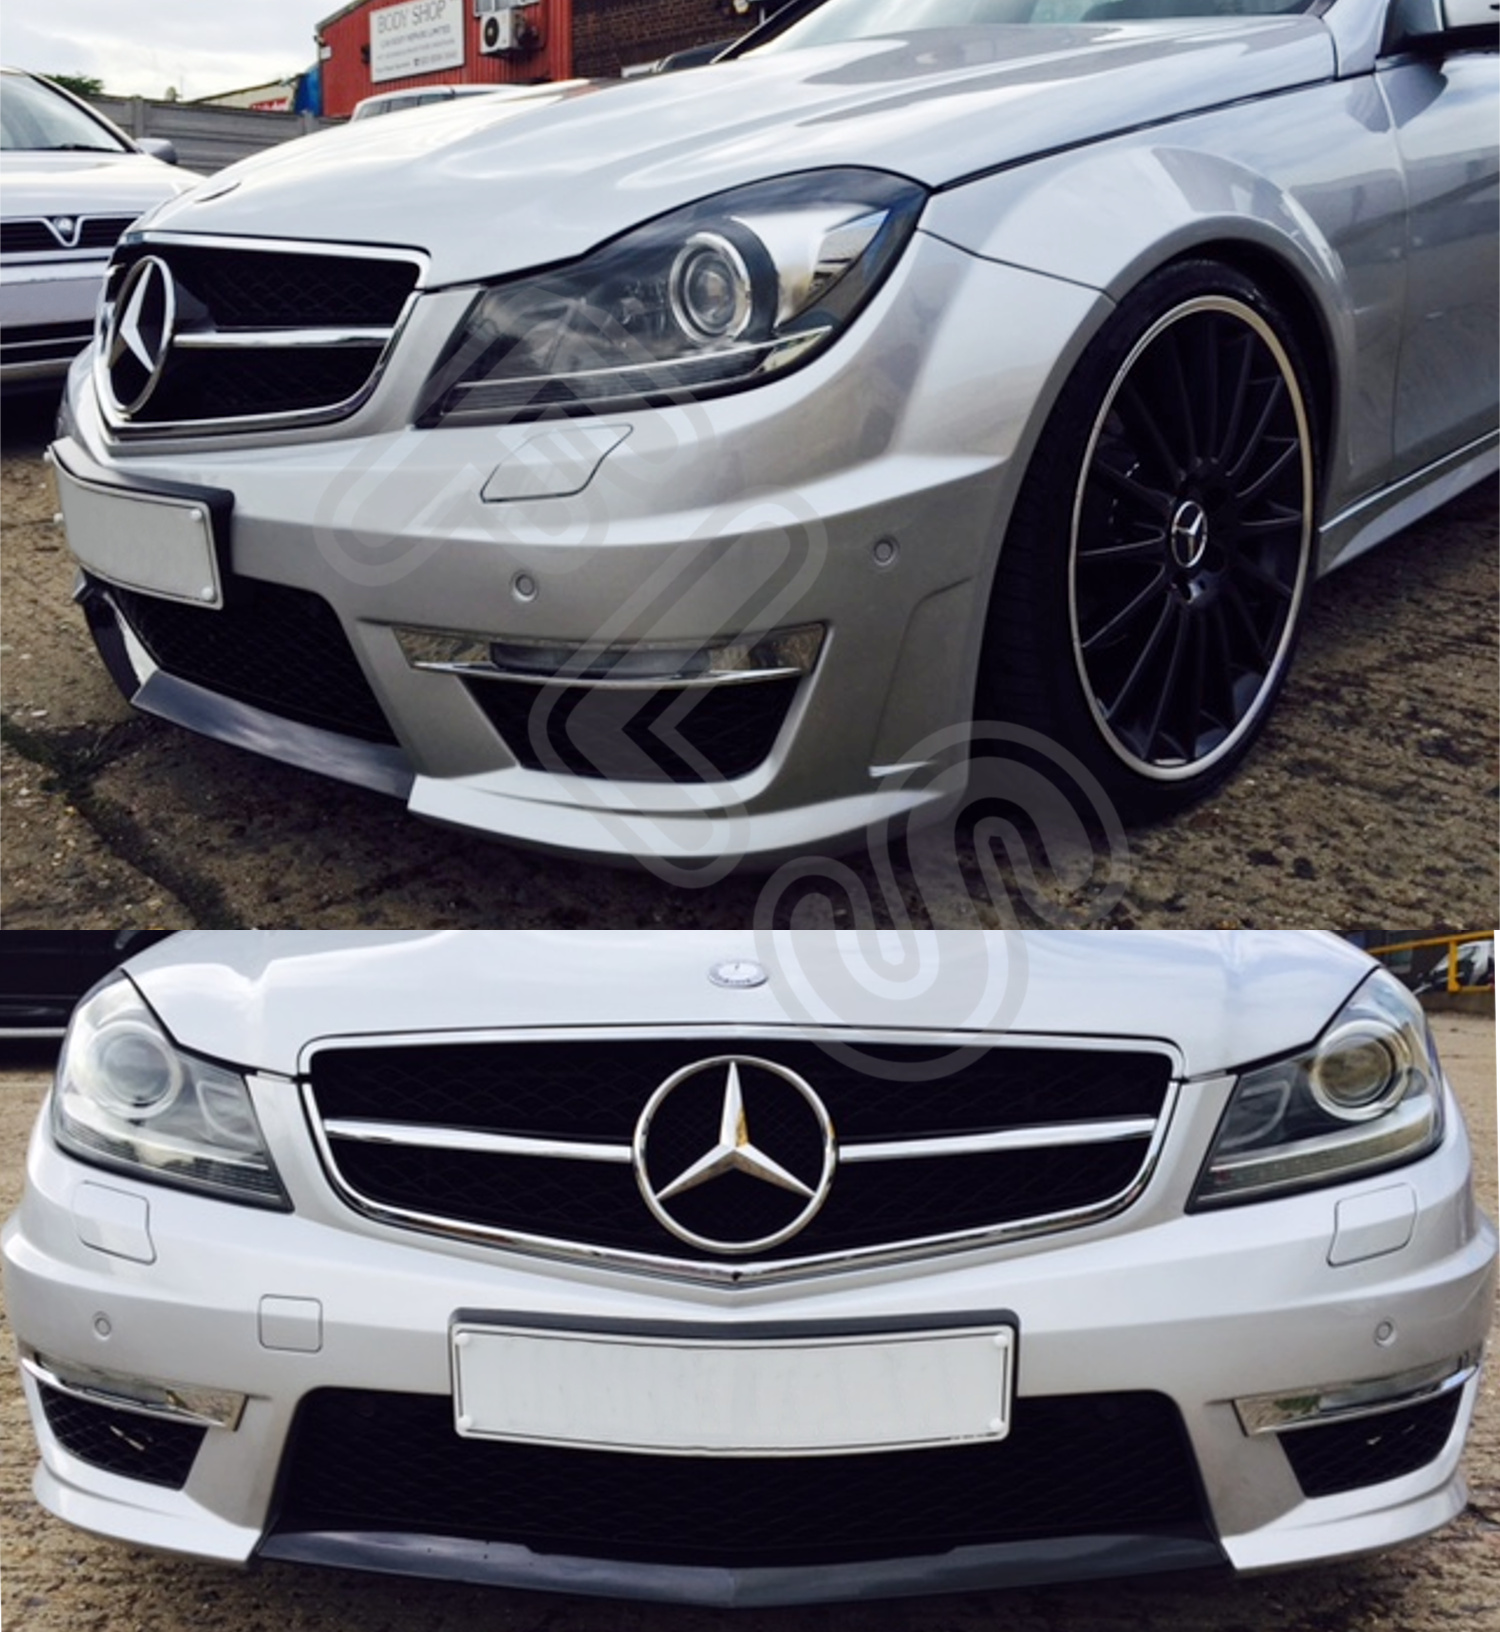 mercedes benz 07 12 w204 amg c63 body kit with headlights. Black Bedroom Furniture Sets. Home Design Ideas